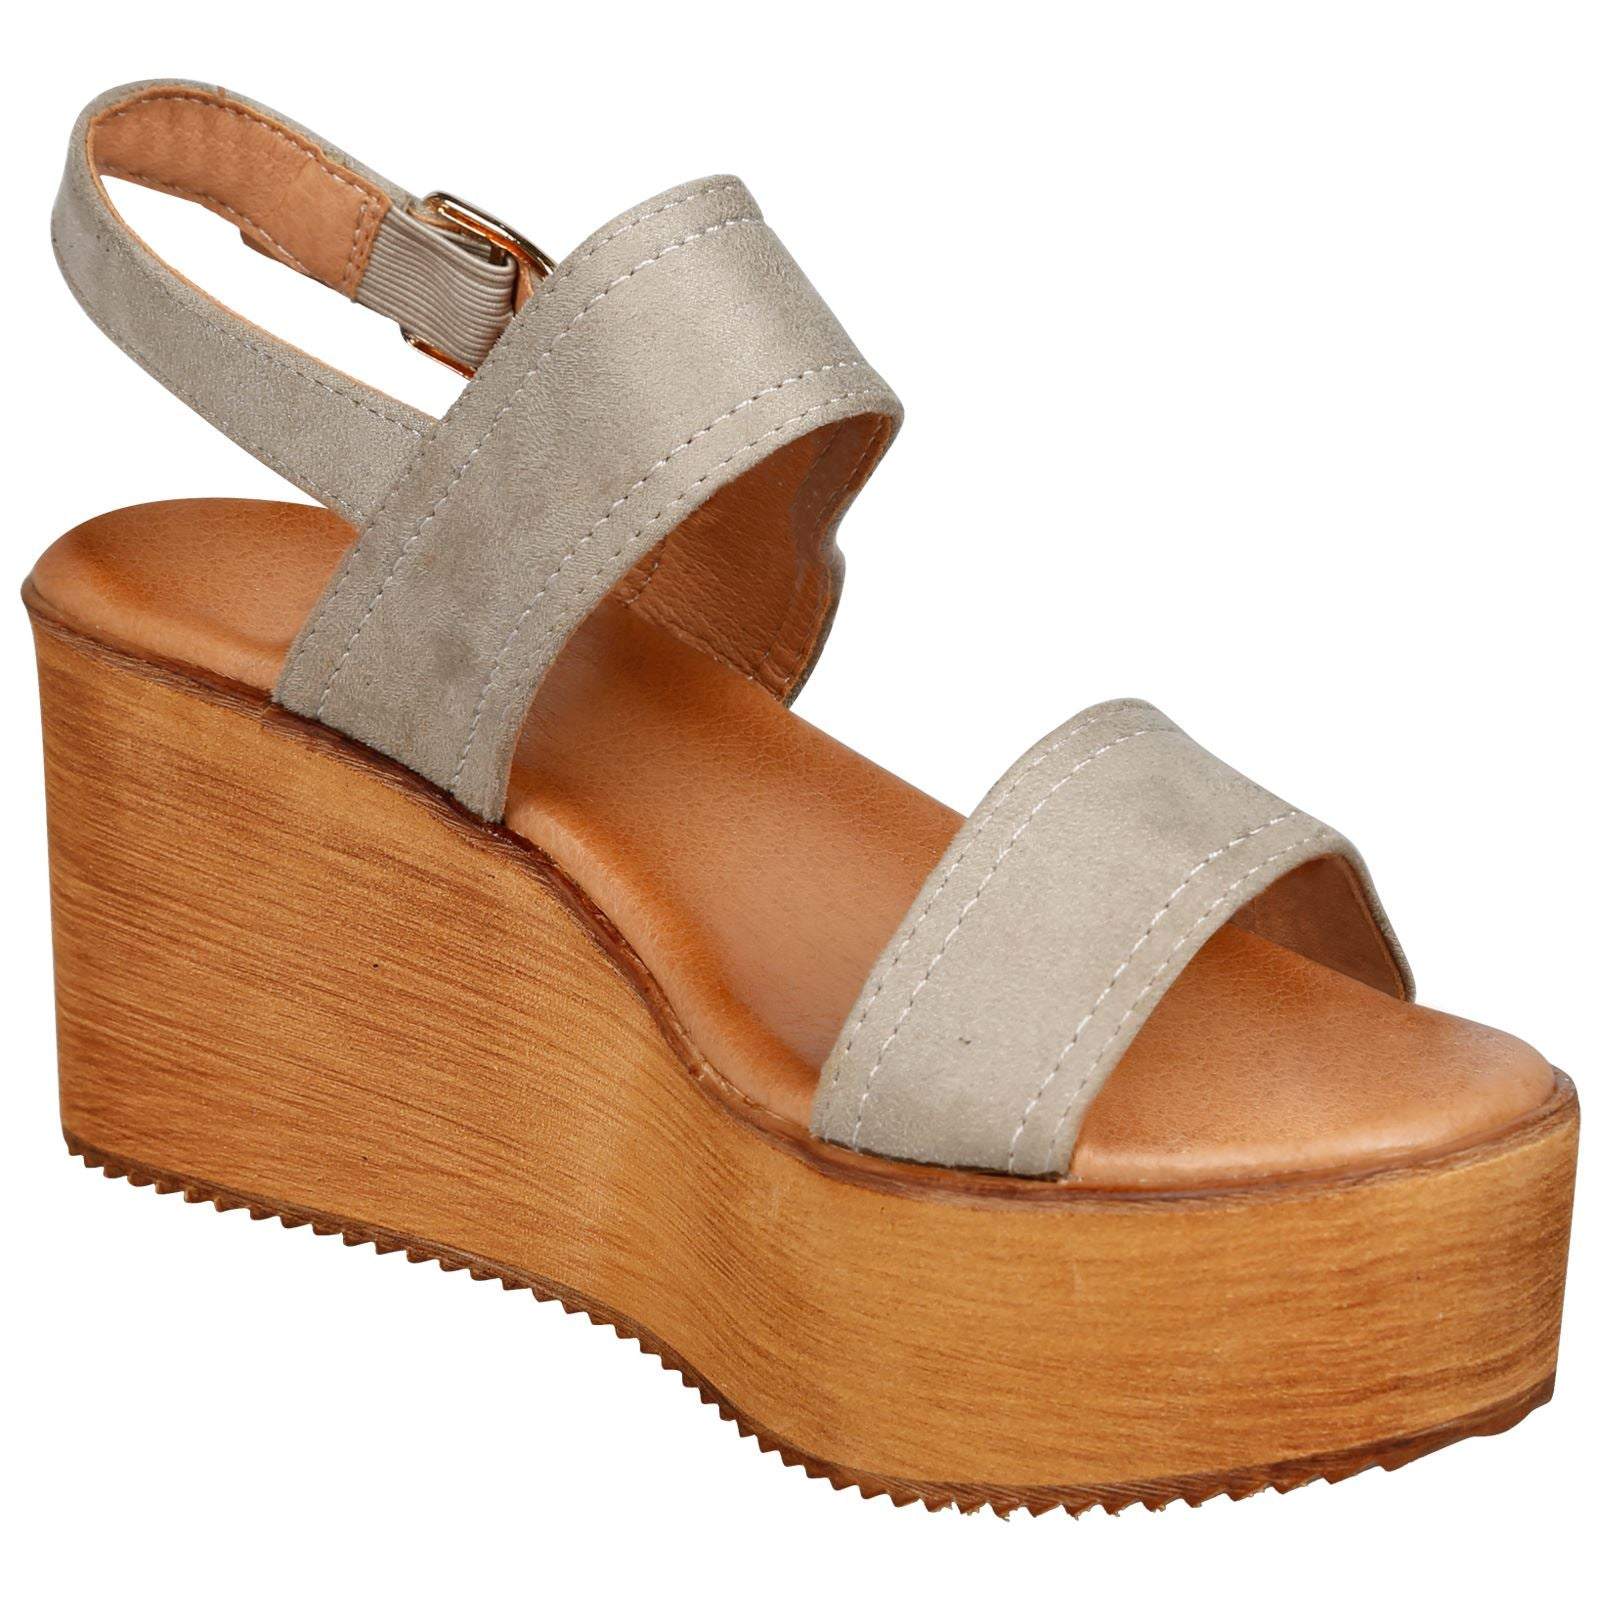 Darby Womens Platform Wedge Sandals in Grey Faux Suede